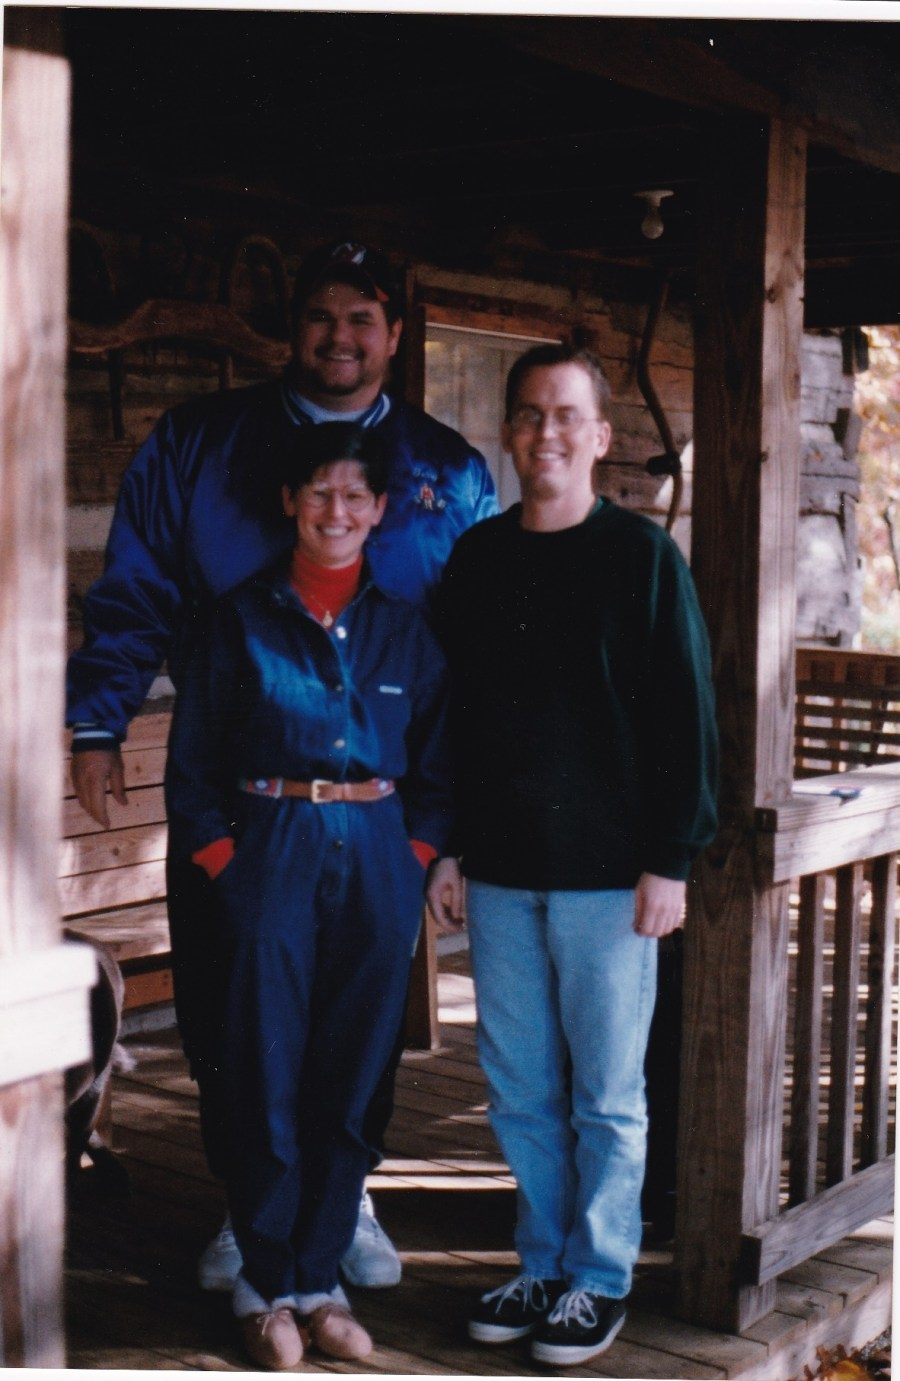 Hinton, Terry Campbell and Linda Sigmon on porch